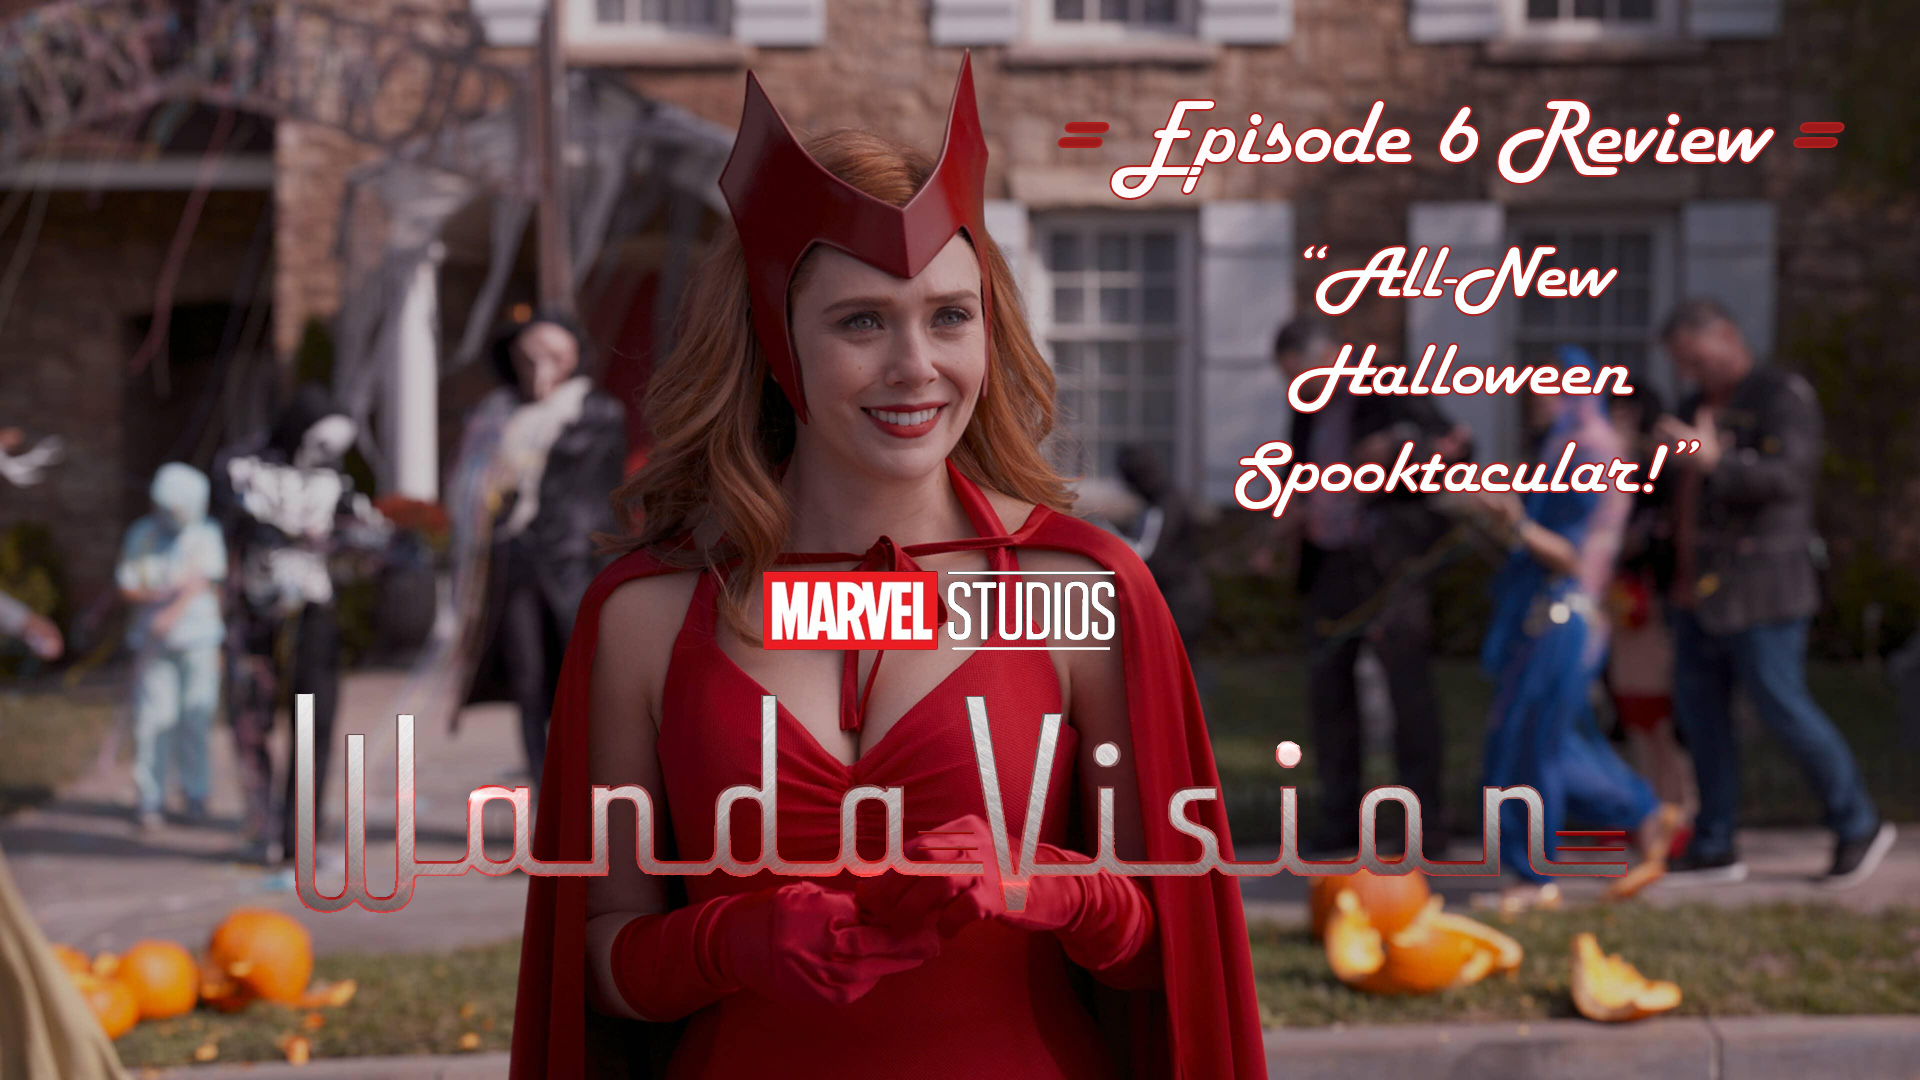 tv-review-wandavision-episode-6-all-new-halloween-spooktacular